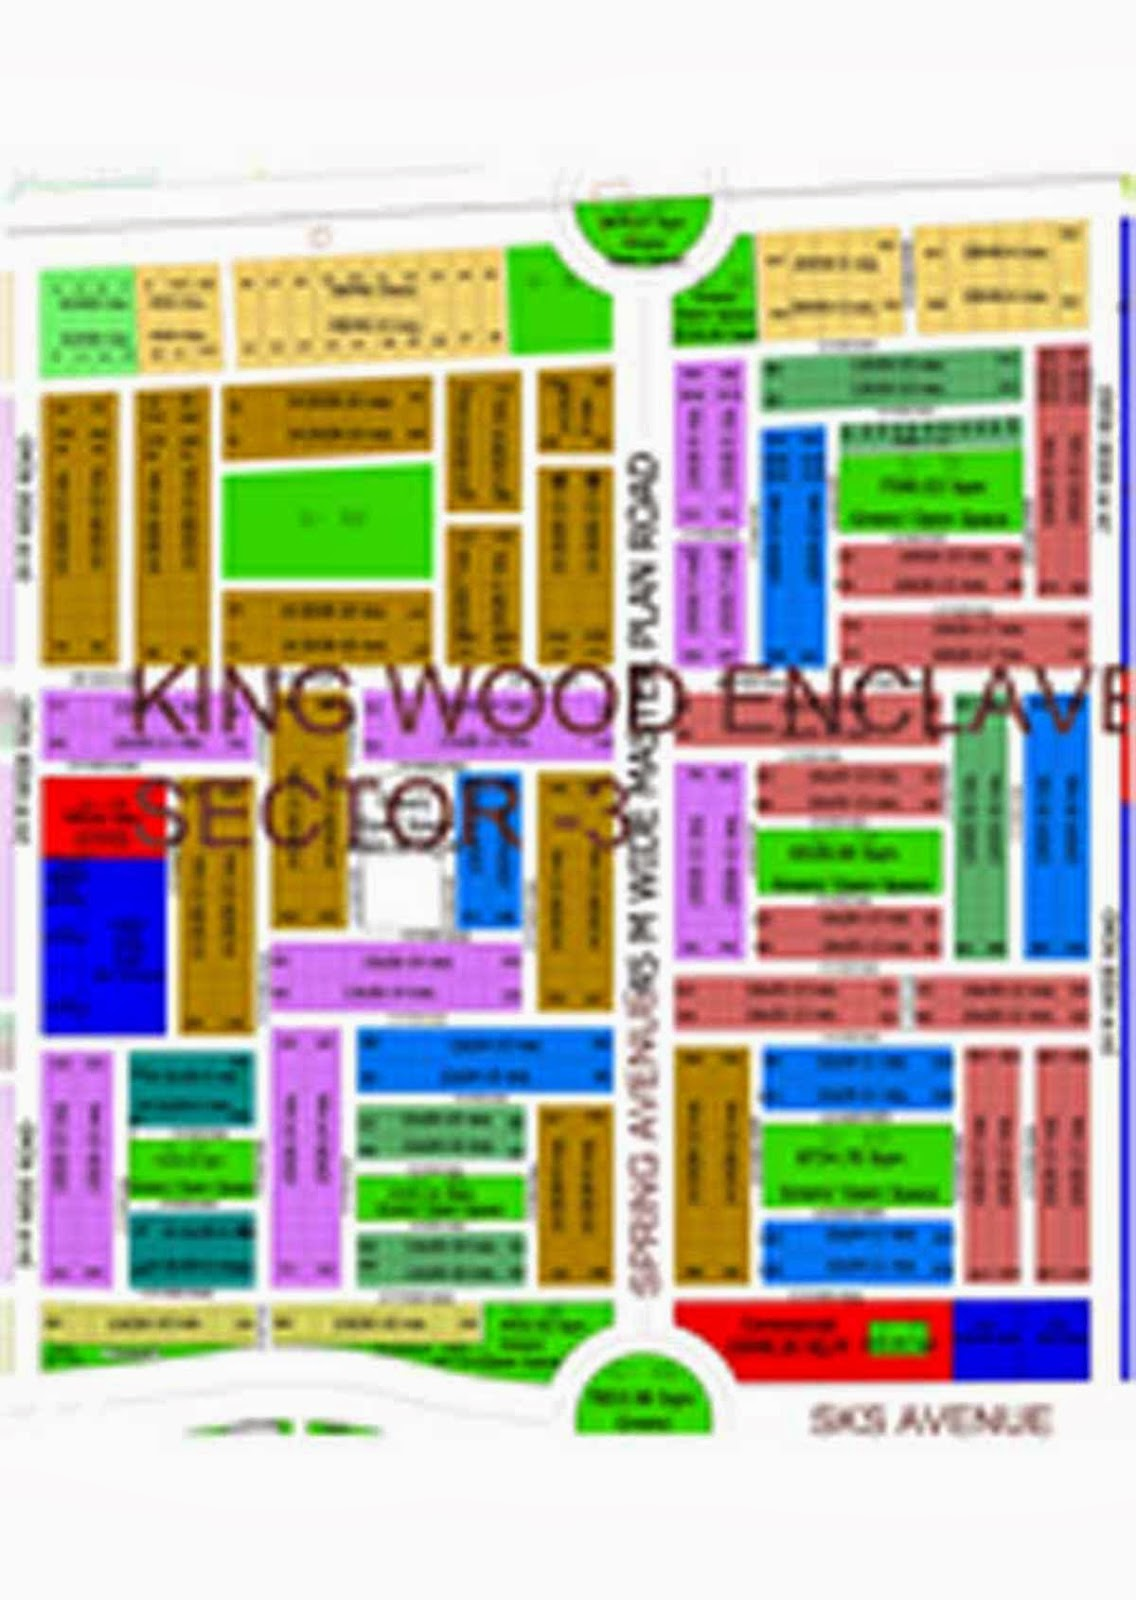 King wood enclave at wave city